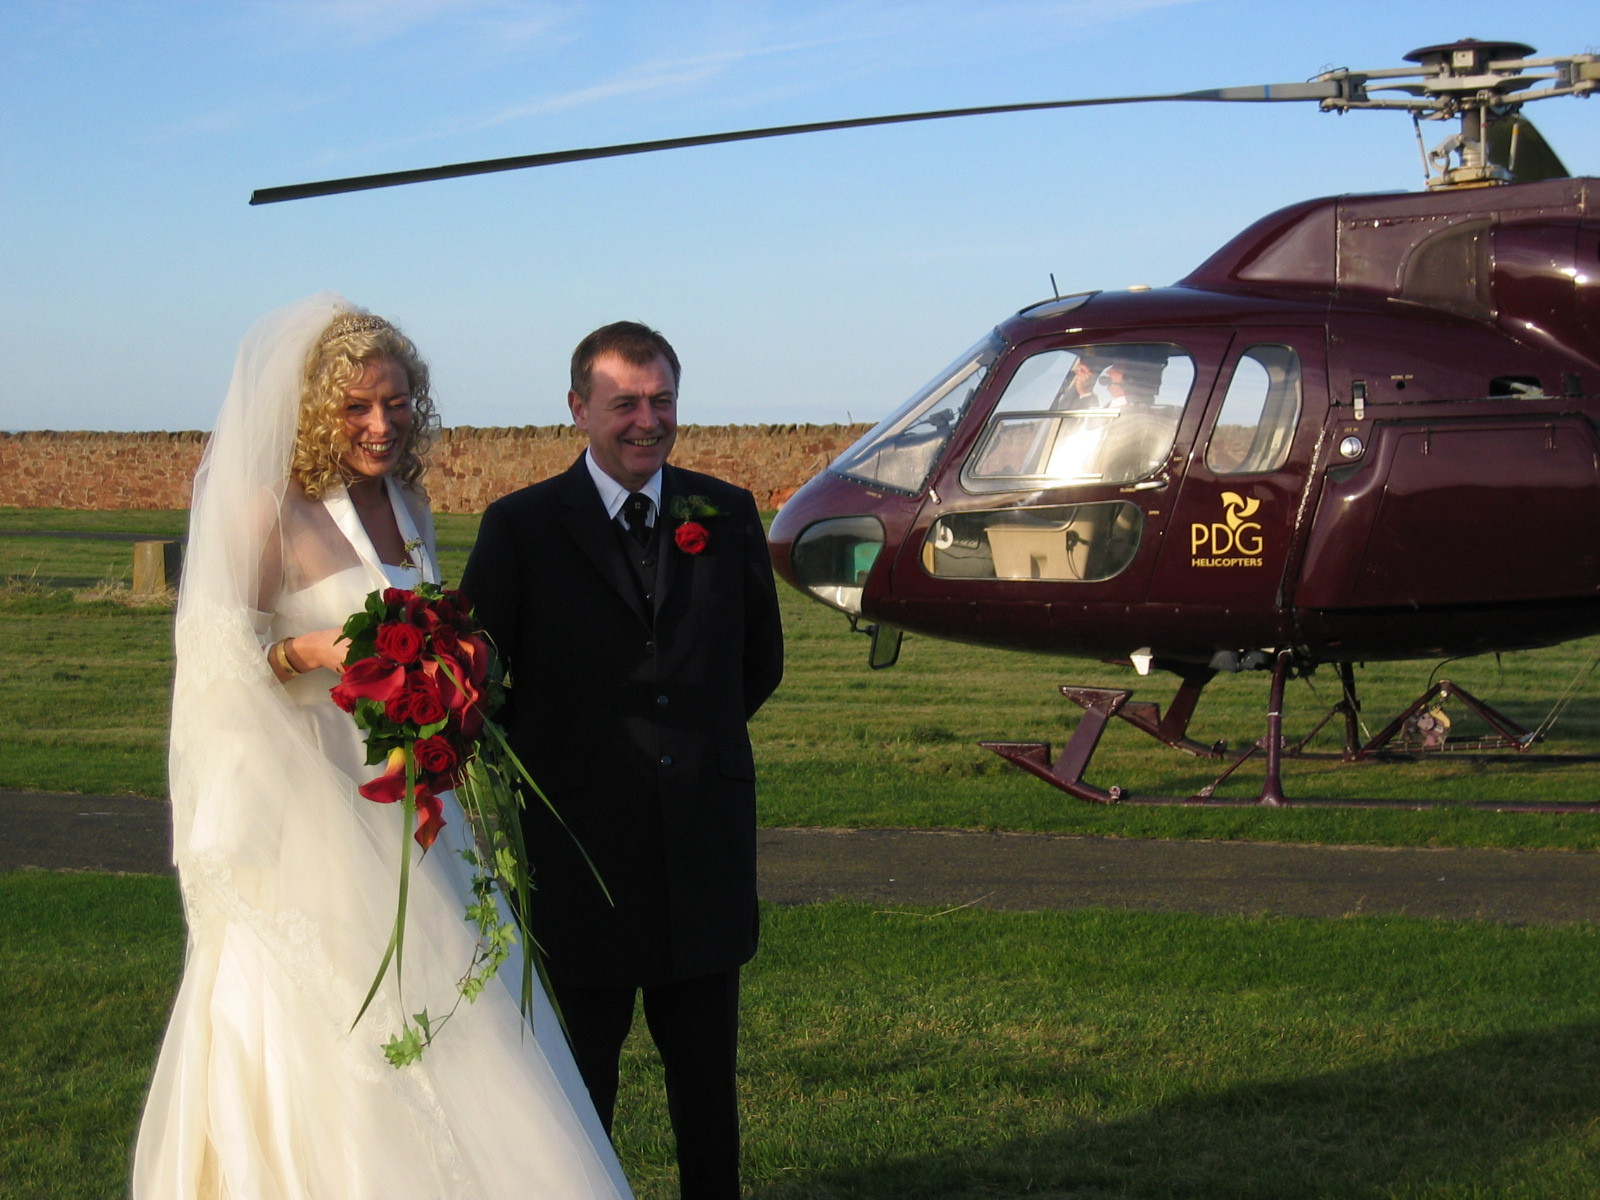 Helicopter Luxury Transfer to your Wedding